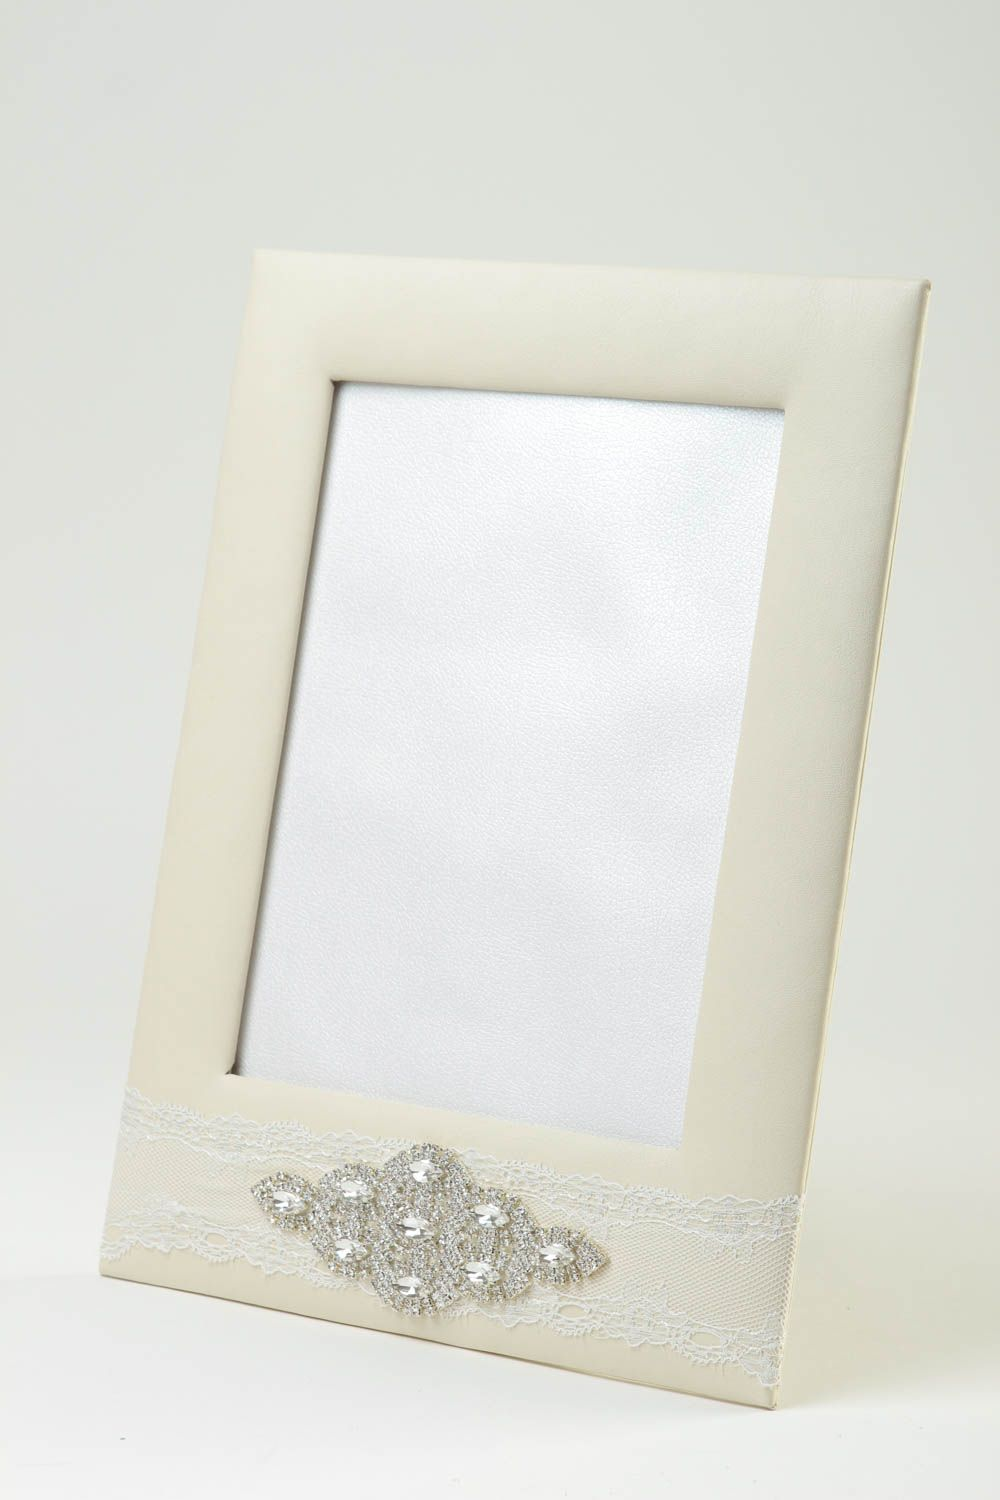 Beautiful handmade photo frame handmade accessories interior decorating photo 2